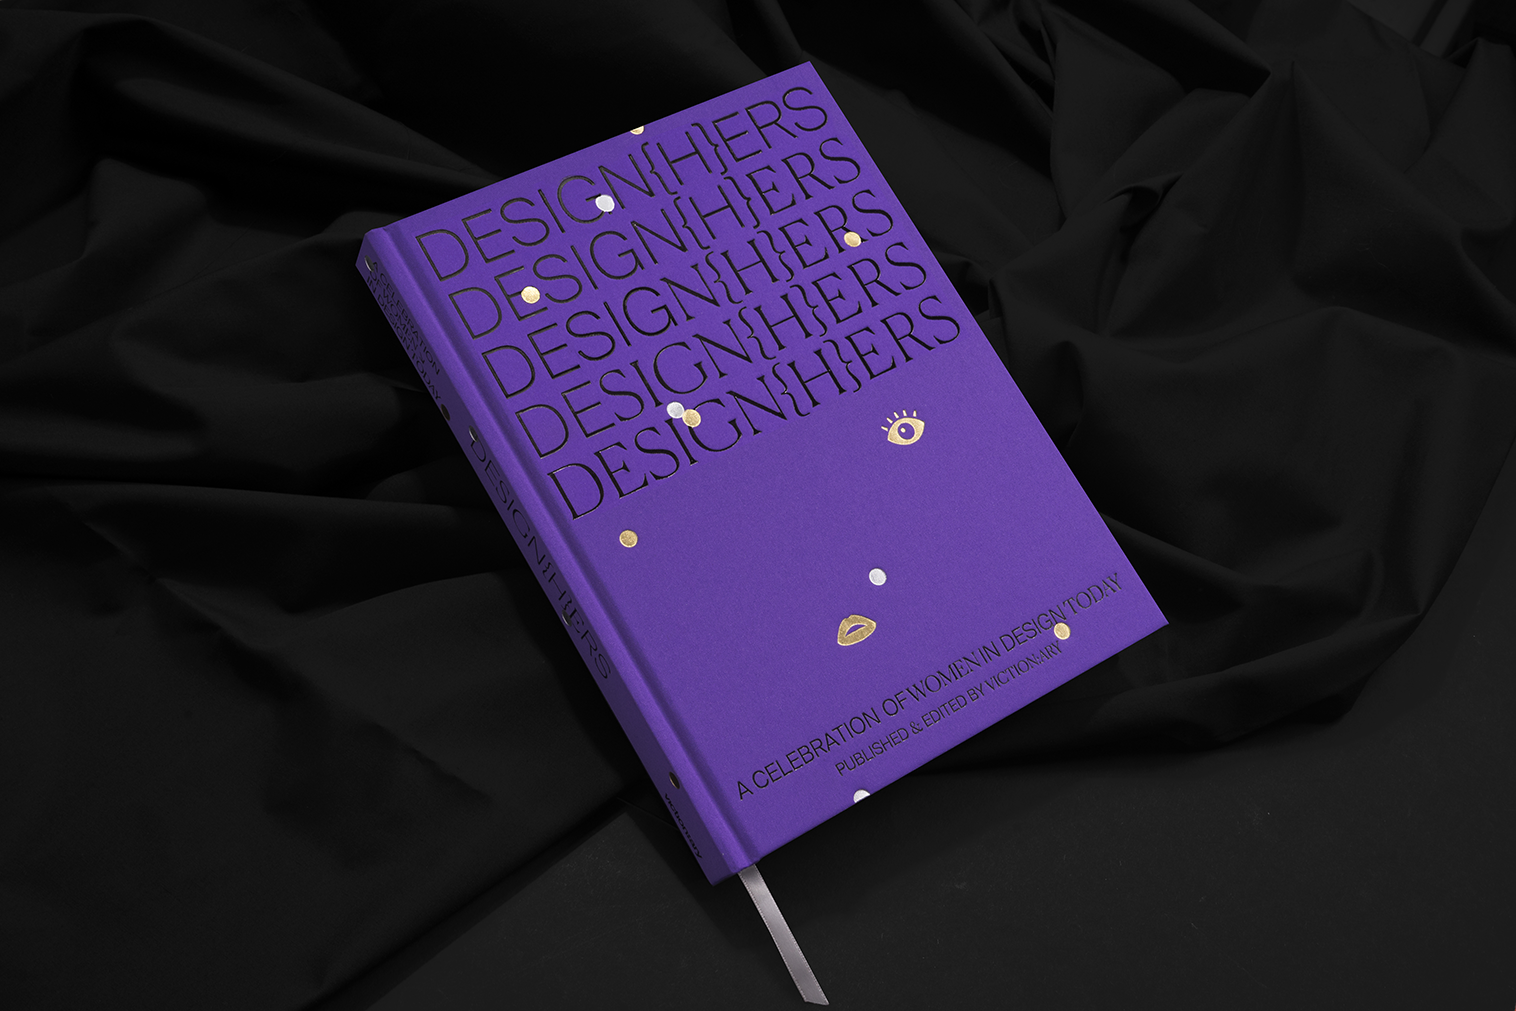 Design(h)ers Book: A Celebration of Women in Design Today